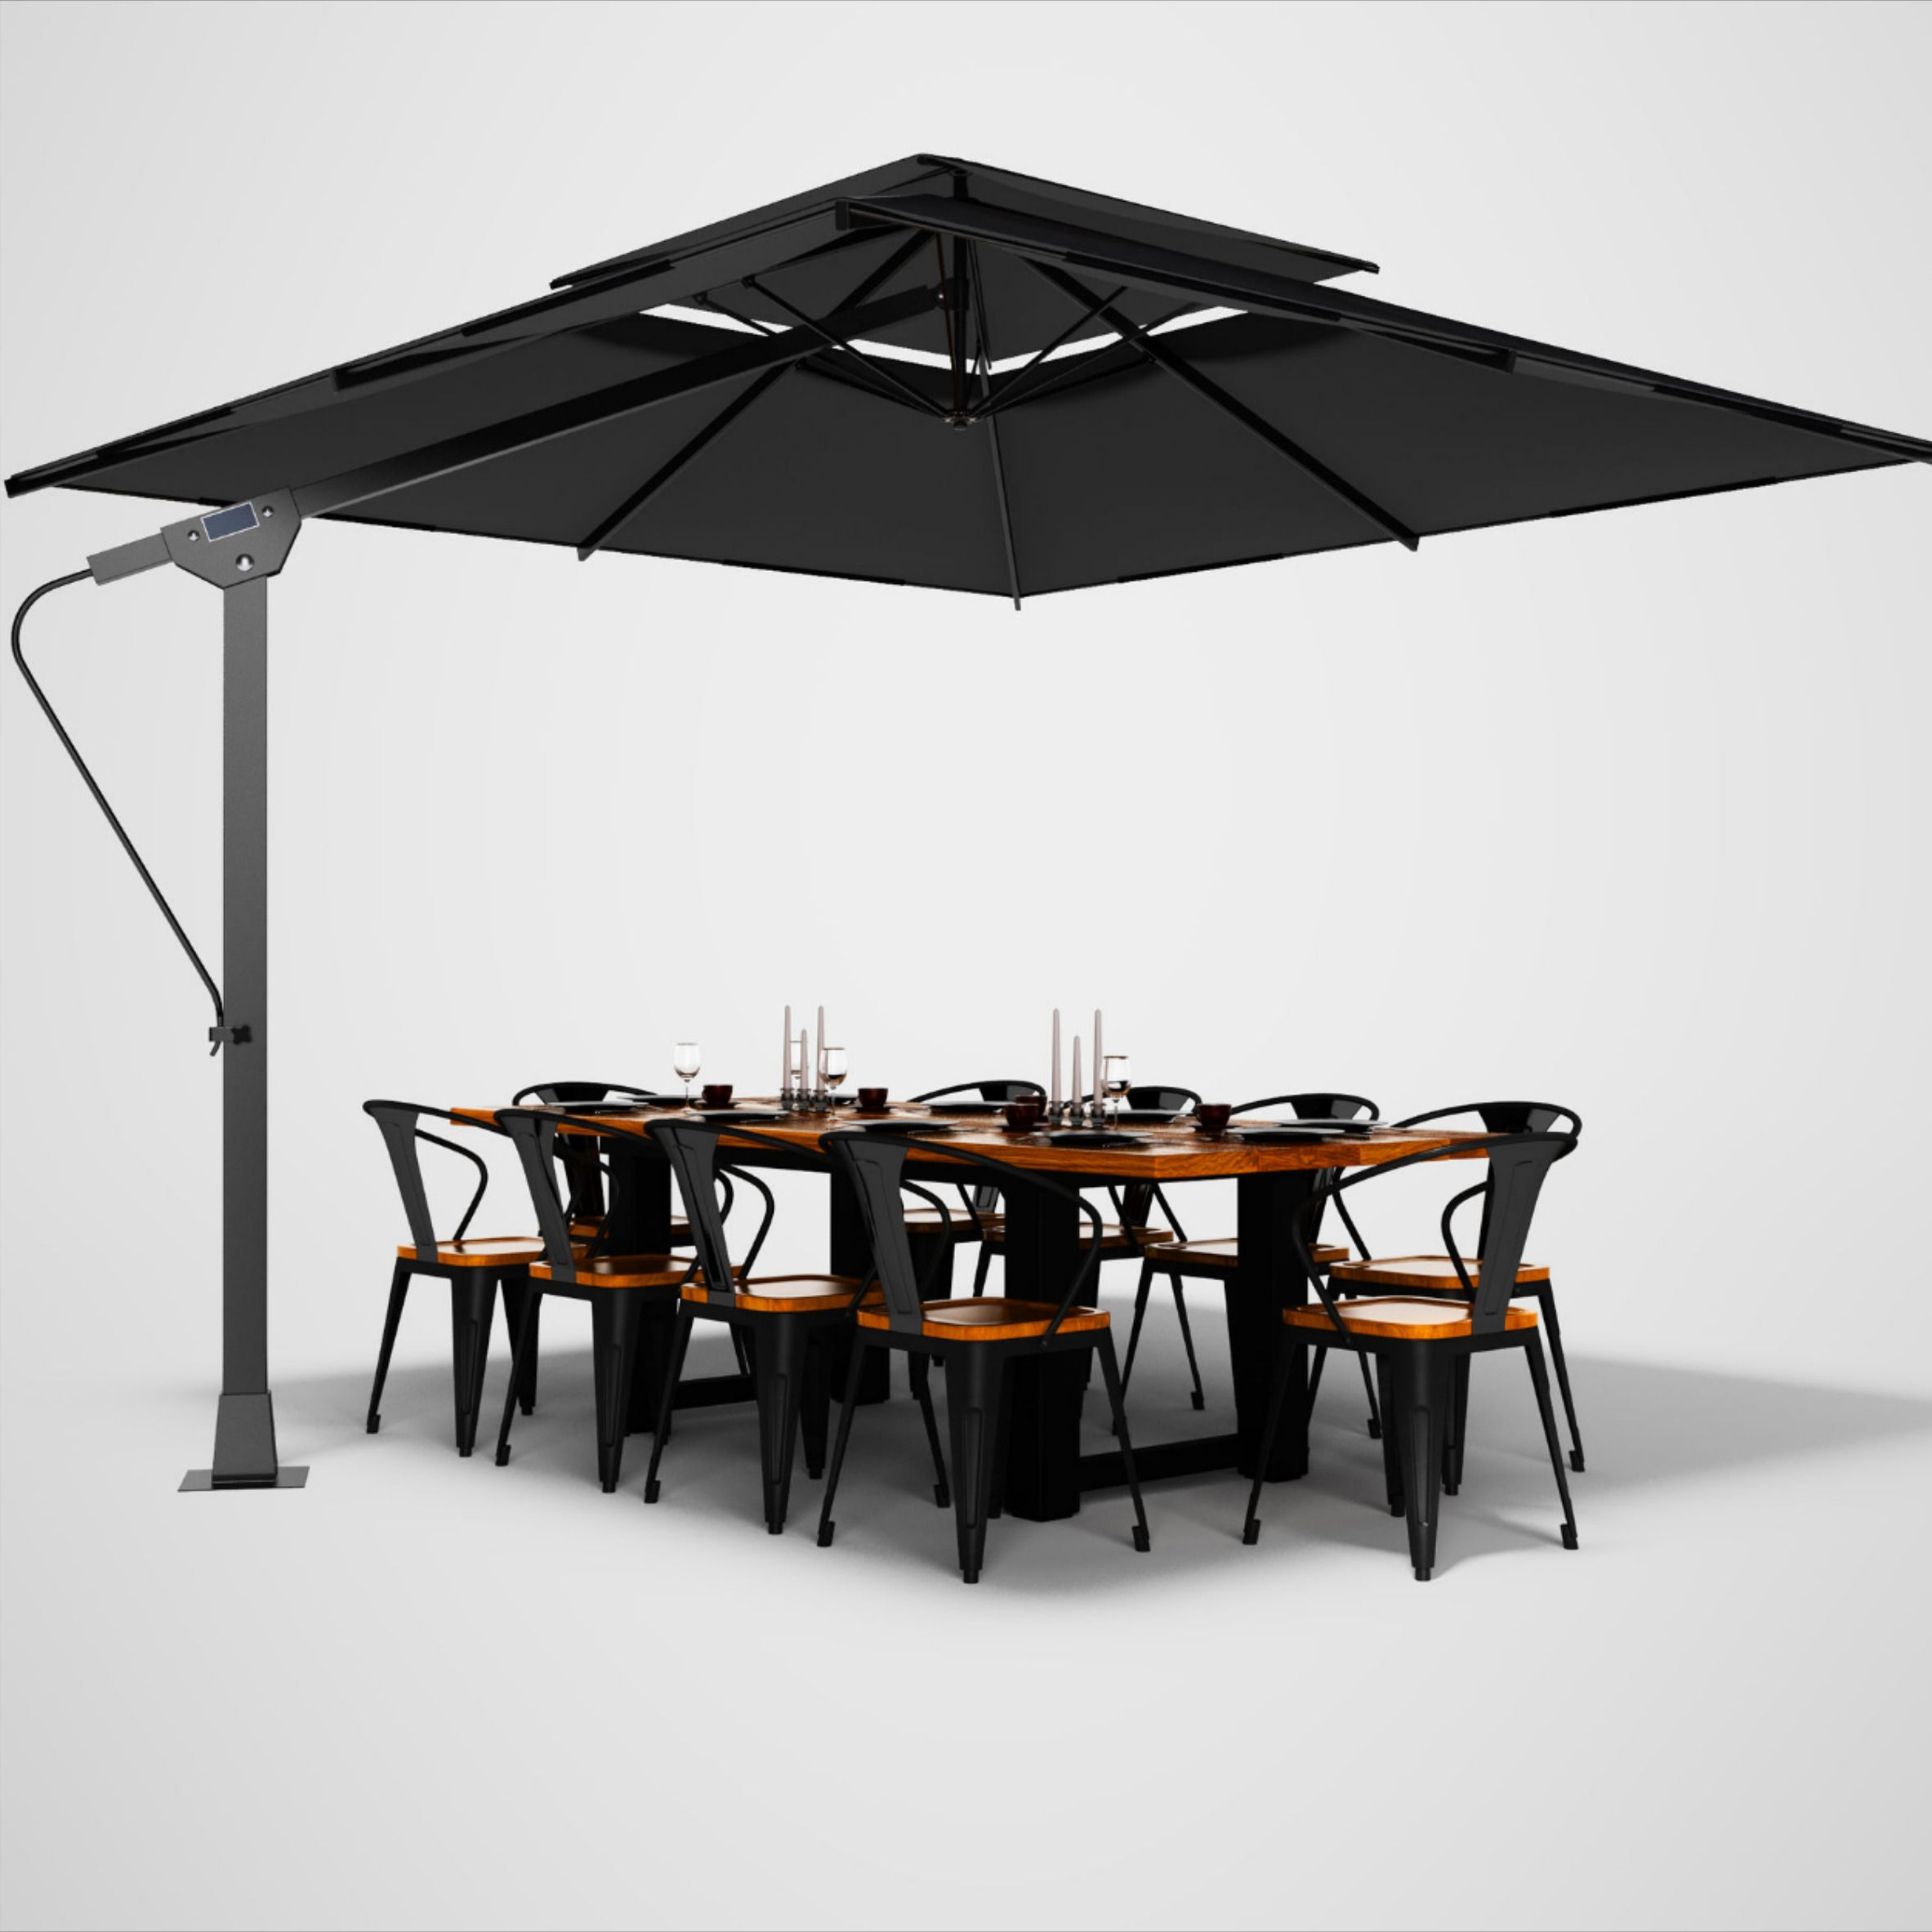 patio umbrella guide to sizes shapes